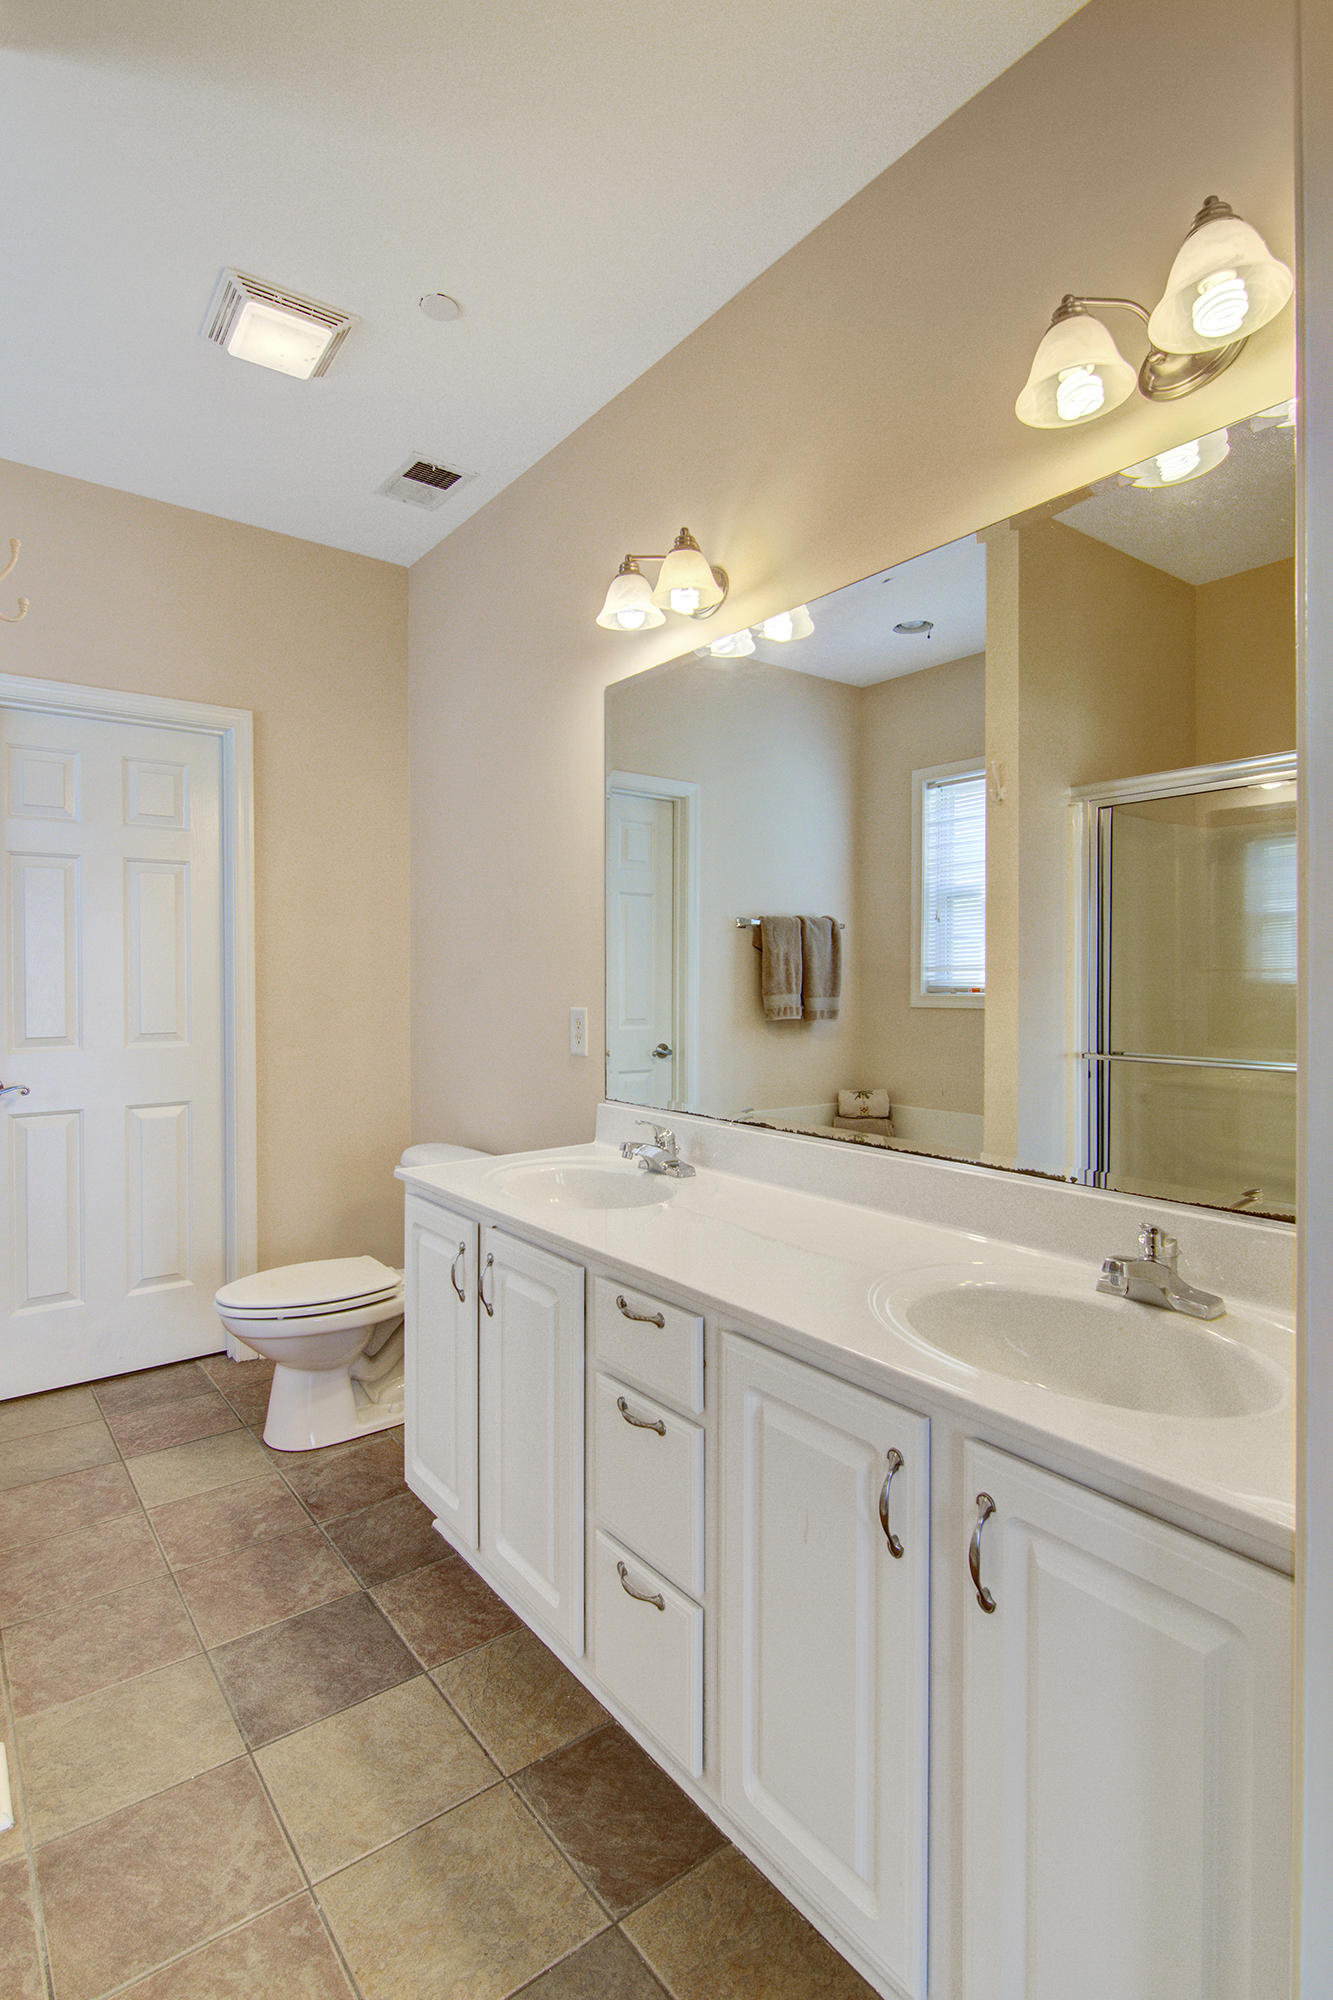 Waters Edge Homes For Sale - 119 2nd, Folly Beach, SC - 26